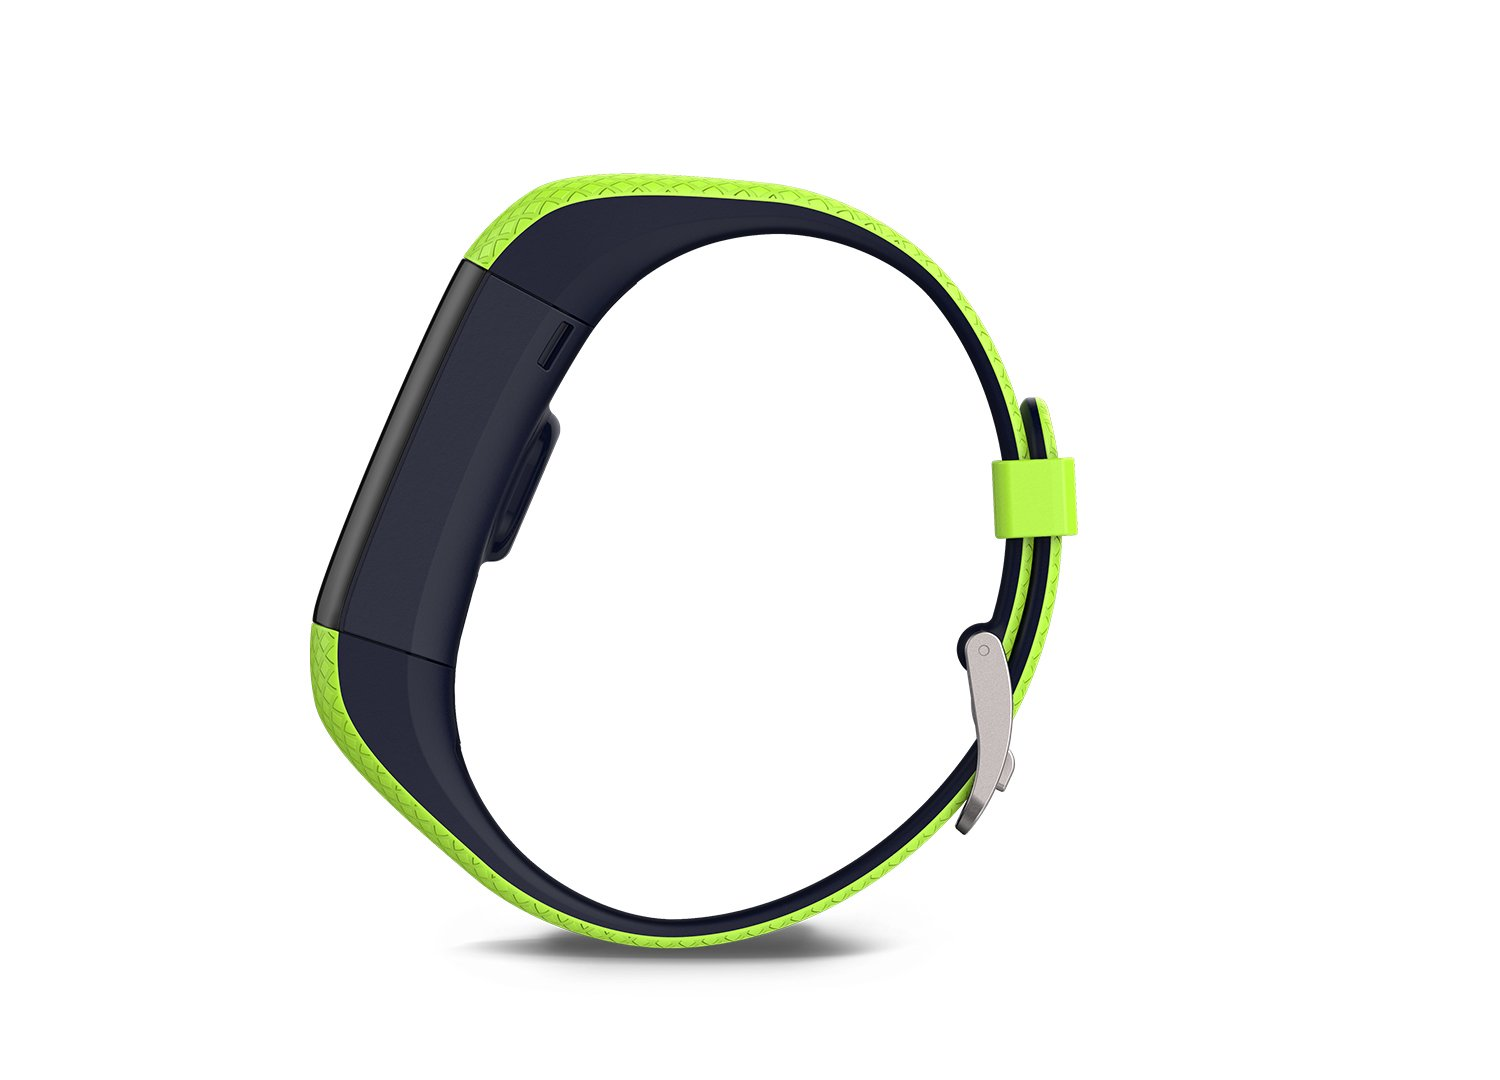 Garmin Approach X40 (Lime) Golf GPS & Fitness Band BUNDLE with PlayBetter USB Car Charge Adapter by Garmin (Image #4)